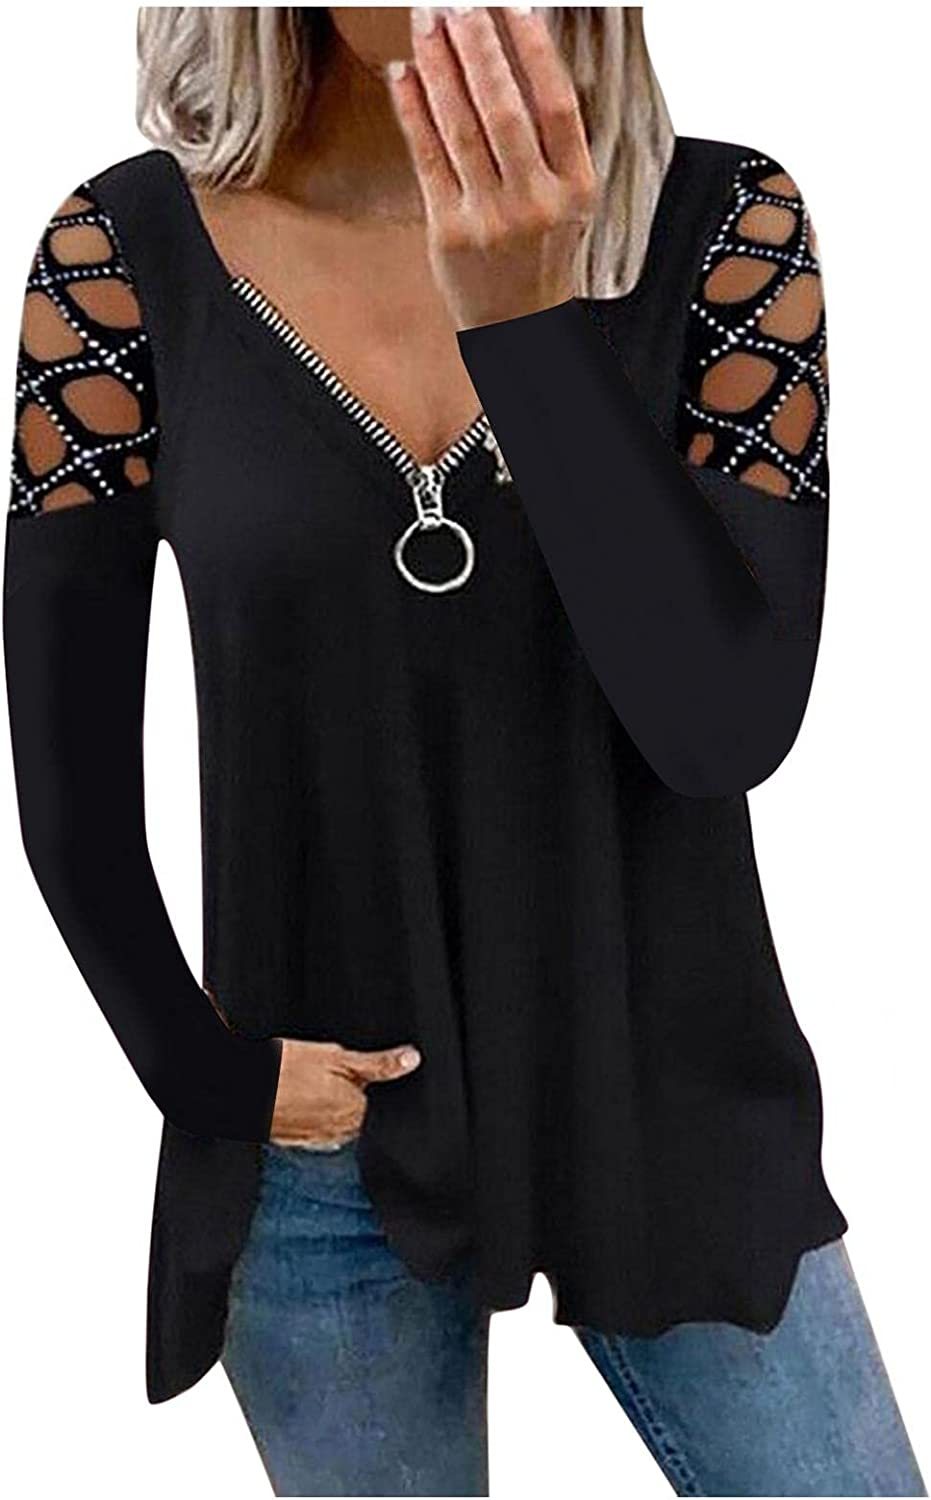 lucyouth Cold Shoulder Tops for Women Sexy Casual Loose V Neck Blouses Graphic 1/4 Zipper Long Sleeve Tunic Tops